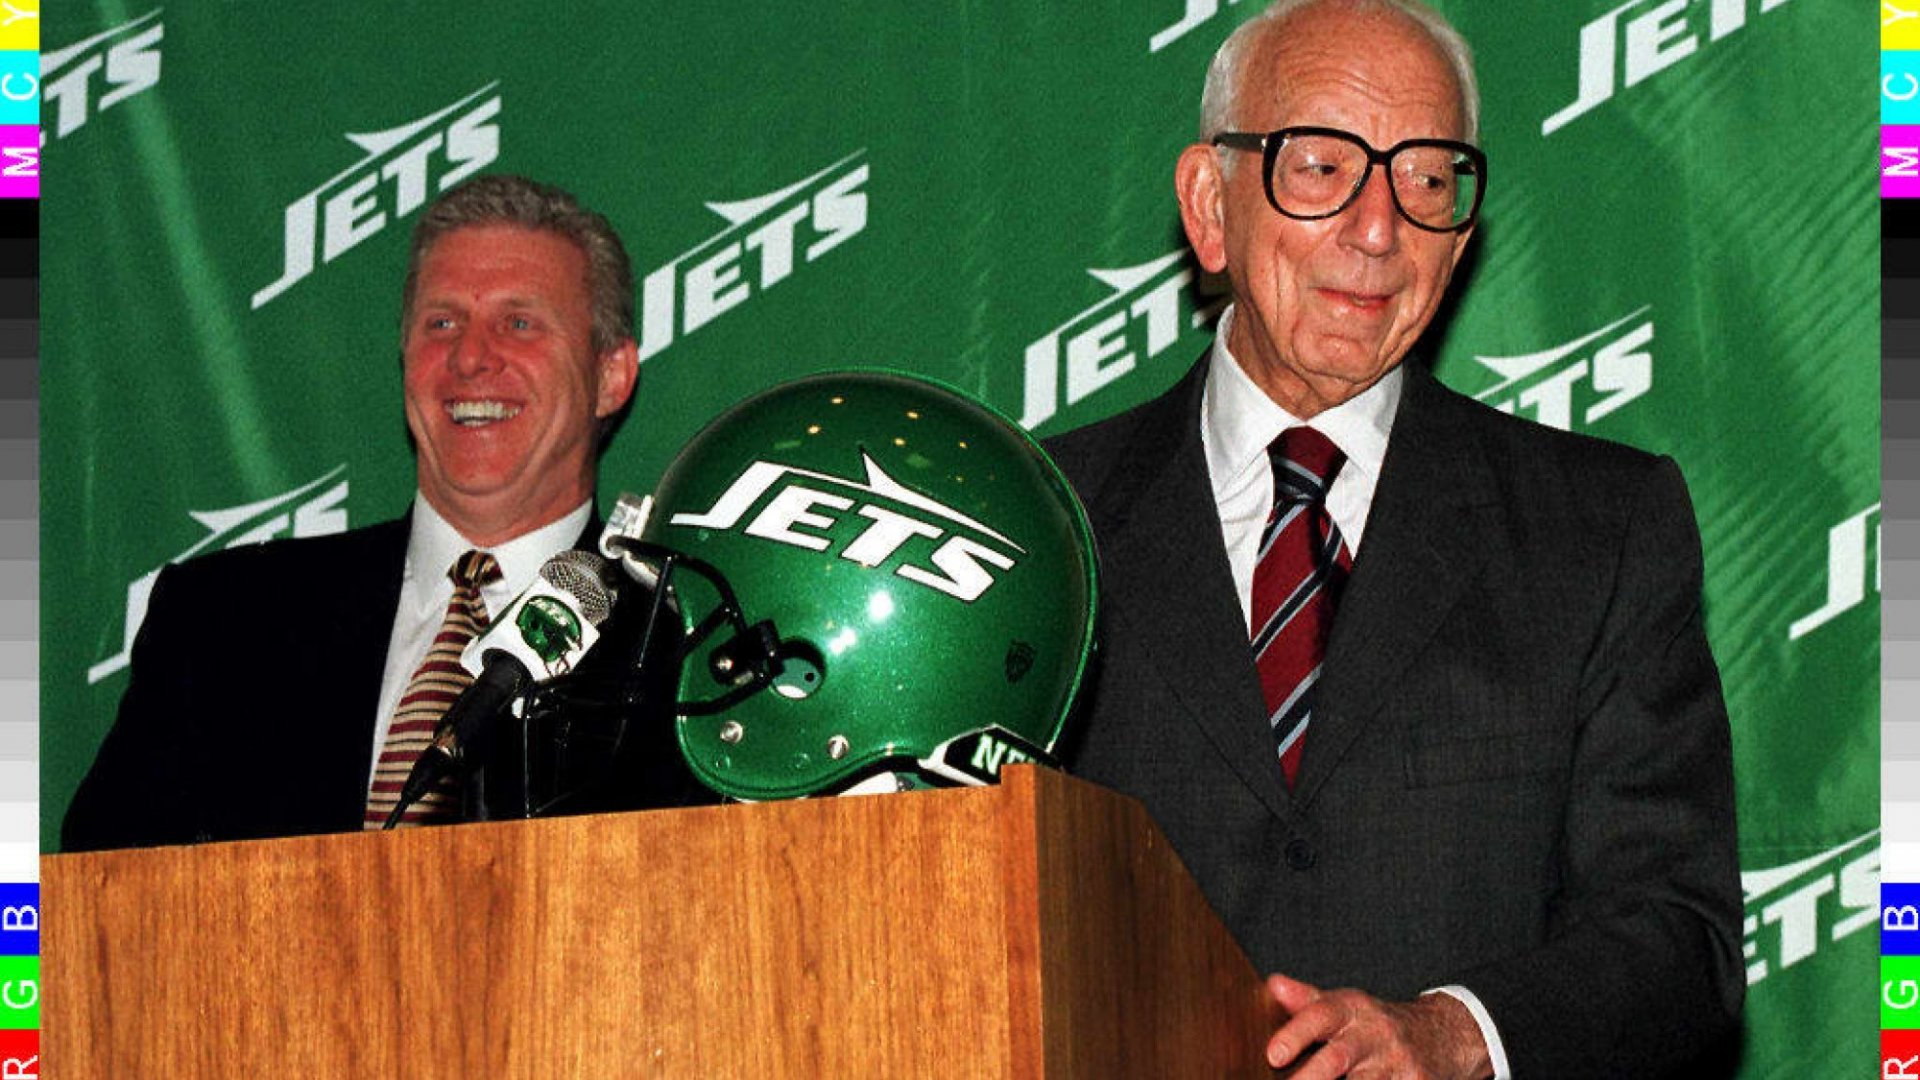 Former New York Jets owner and legendary oil baron Leon Hess (r) smiles at the 1997 press conference where he introduced head coach Bill Parcells.